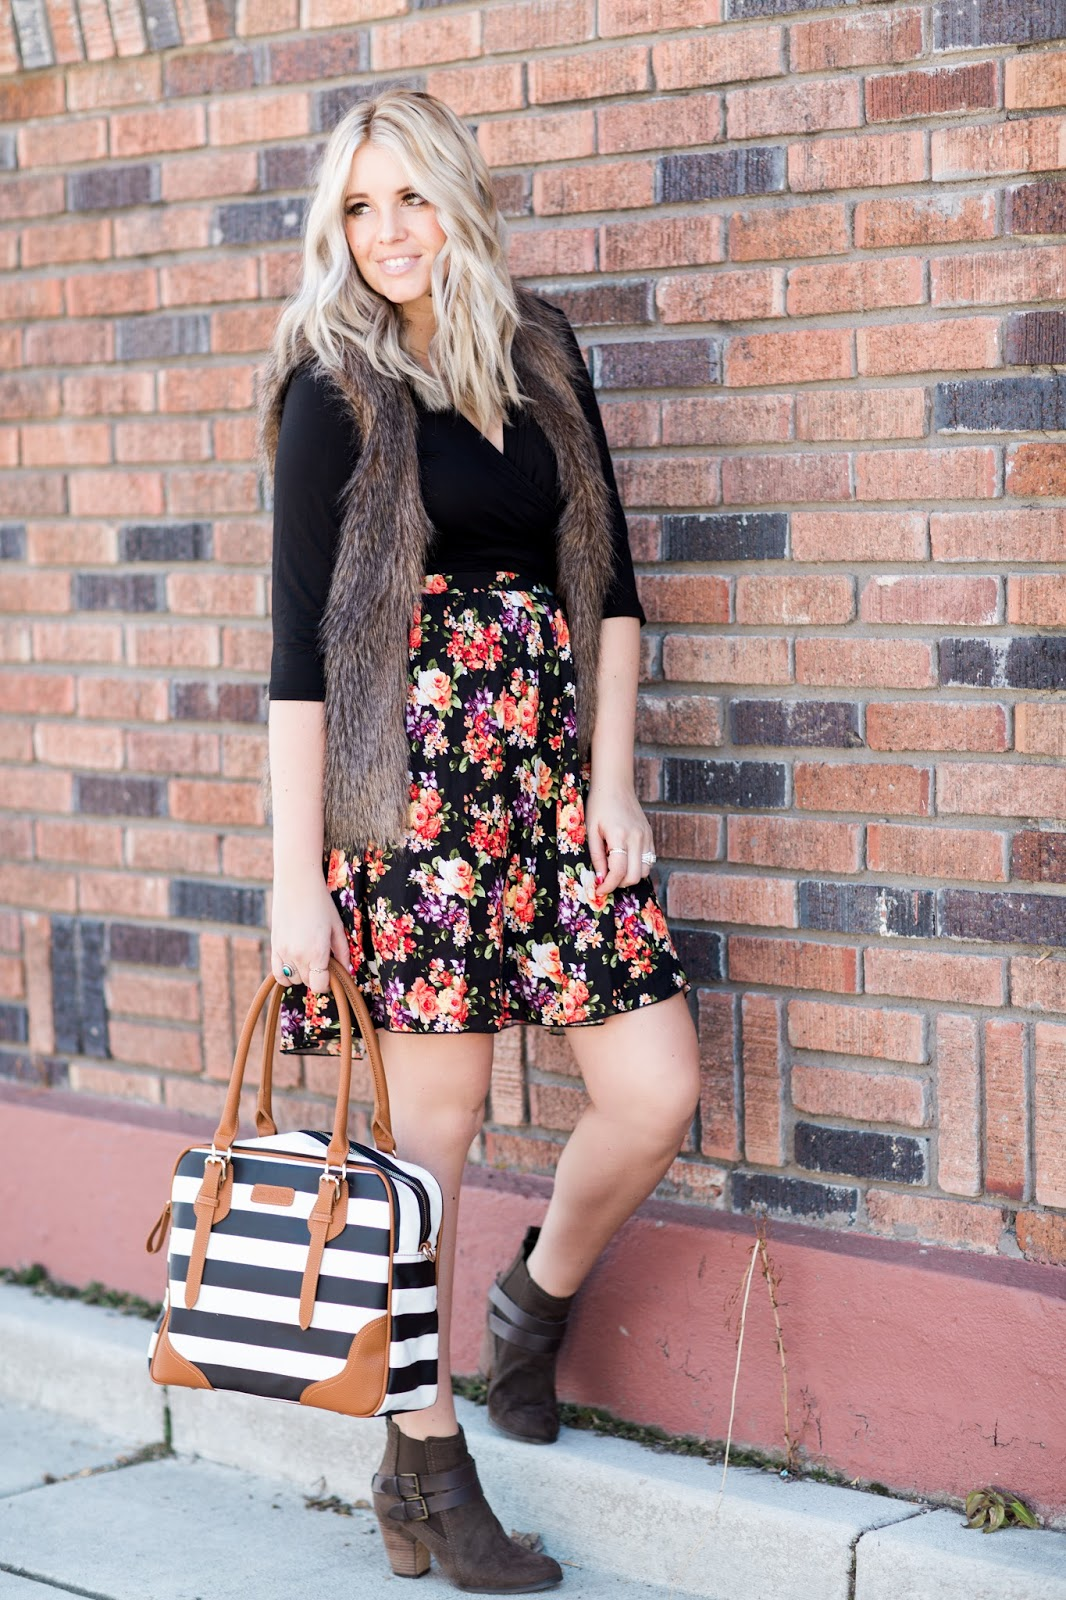 Udderly Hot Mama, Utah Fashion blogger, Nursing outfit